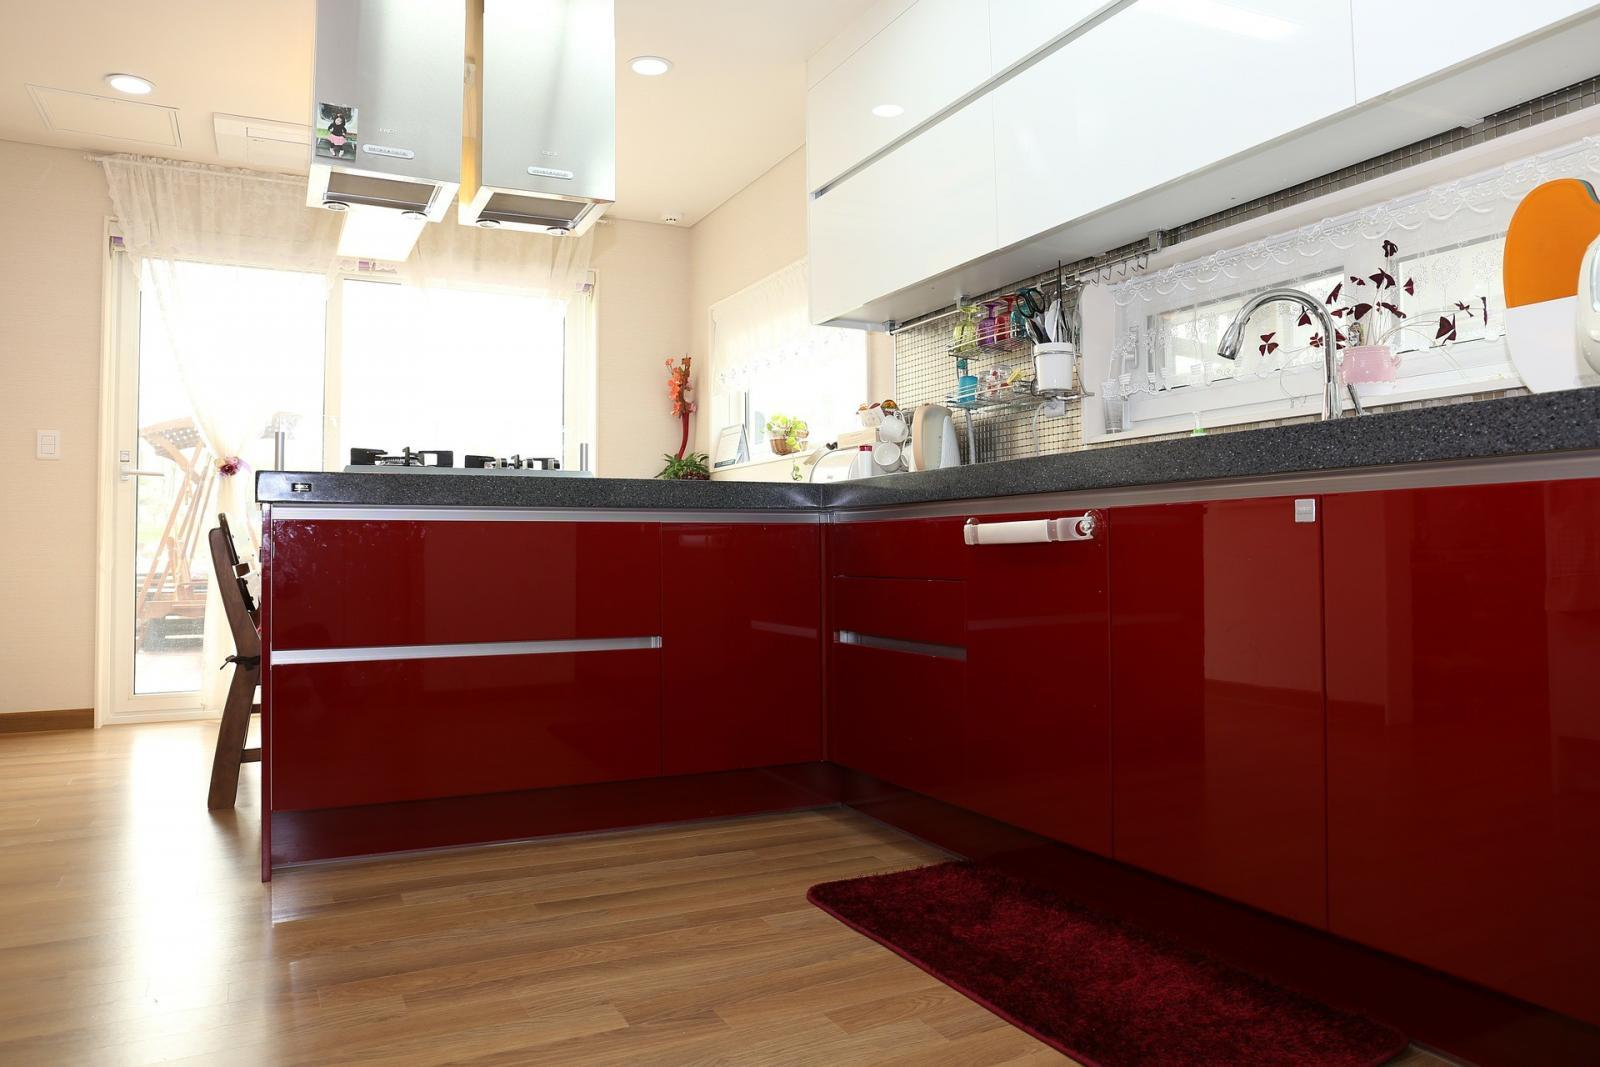 Using Red Kitchen Cabinets In A Contemporary Kitchen Homematas